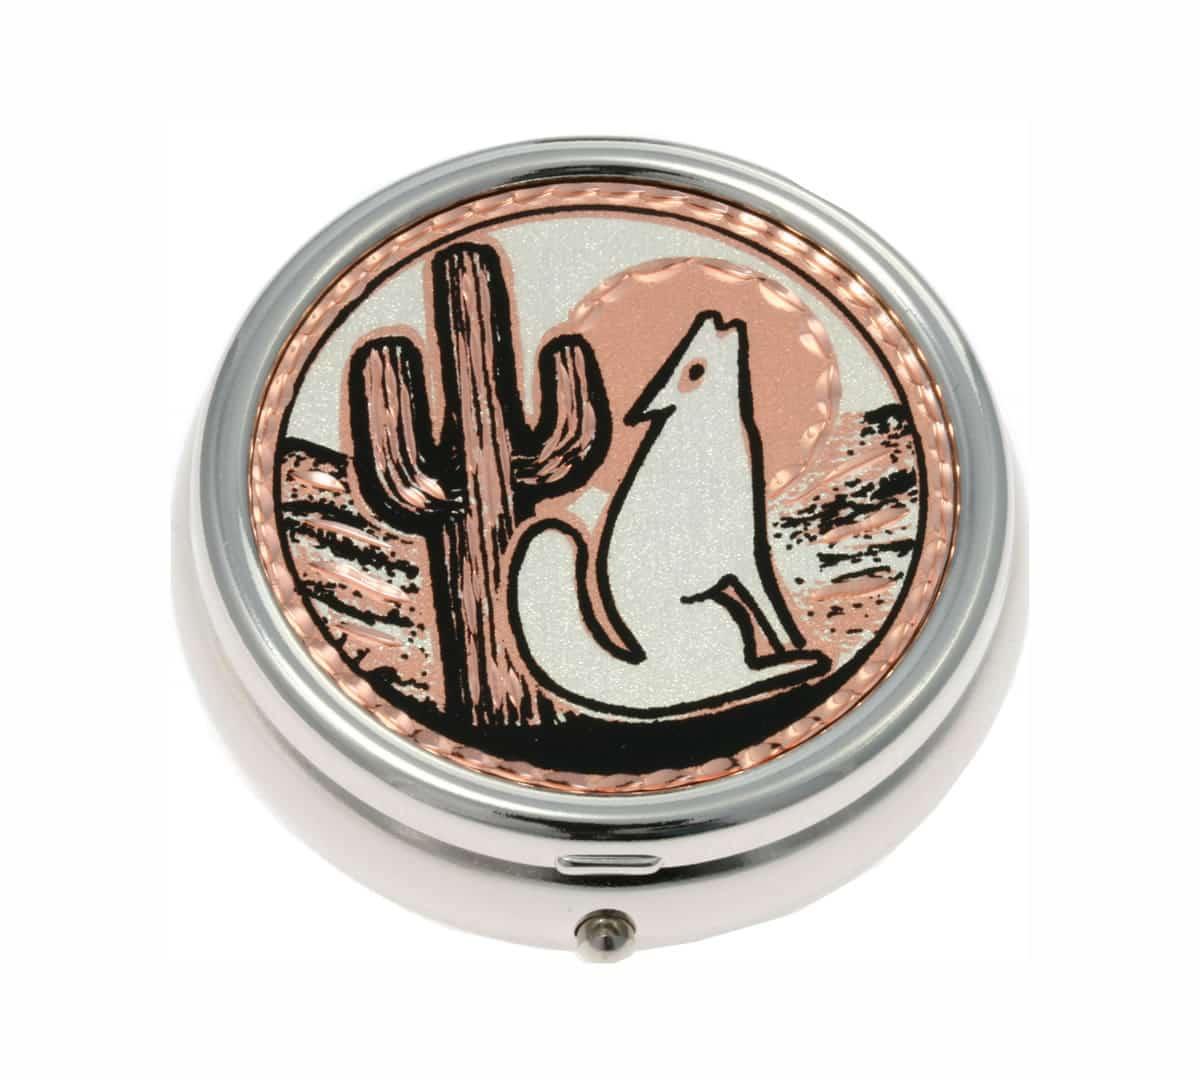 Buy Silver Color Pill Boxes Embellished with Desert Scene and Coyote Copper Artwork